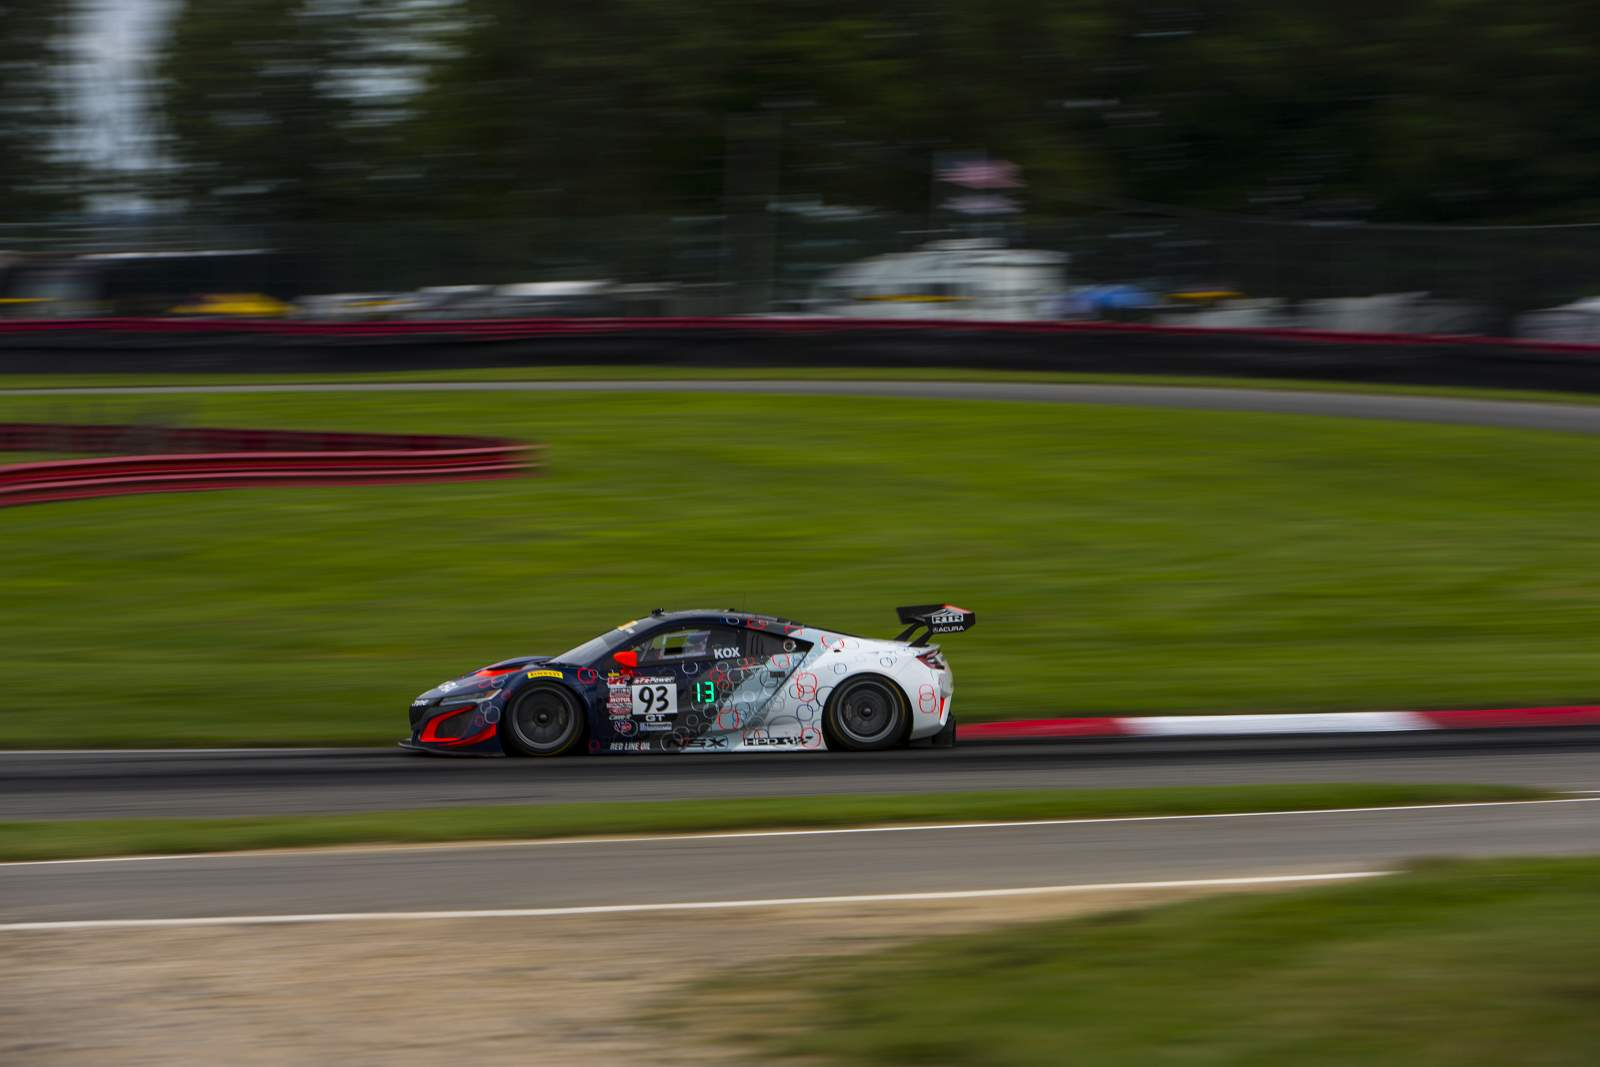 peter-kox-realtime-racing-pirelli-world-challenge-mid-ohio-30